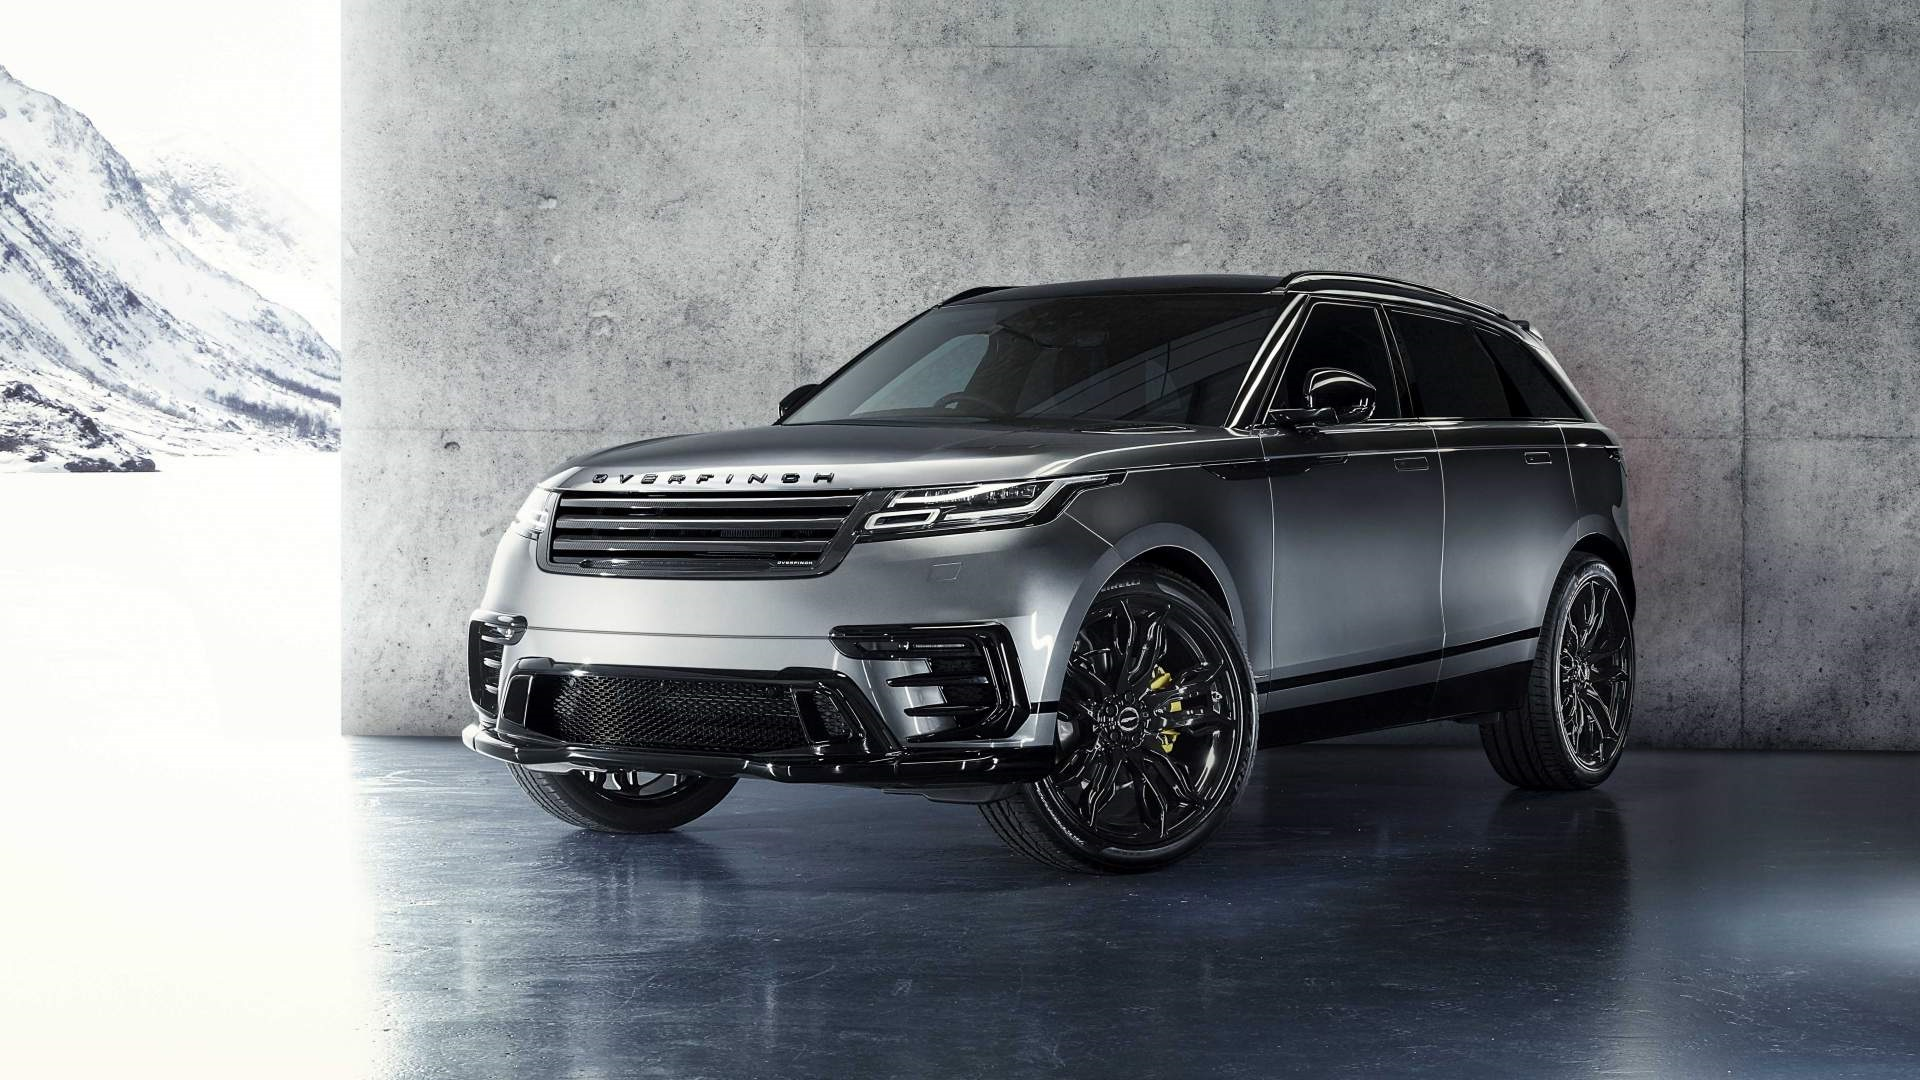 Range Rover Velar by Overfinch (1)